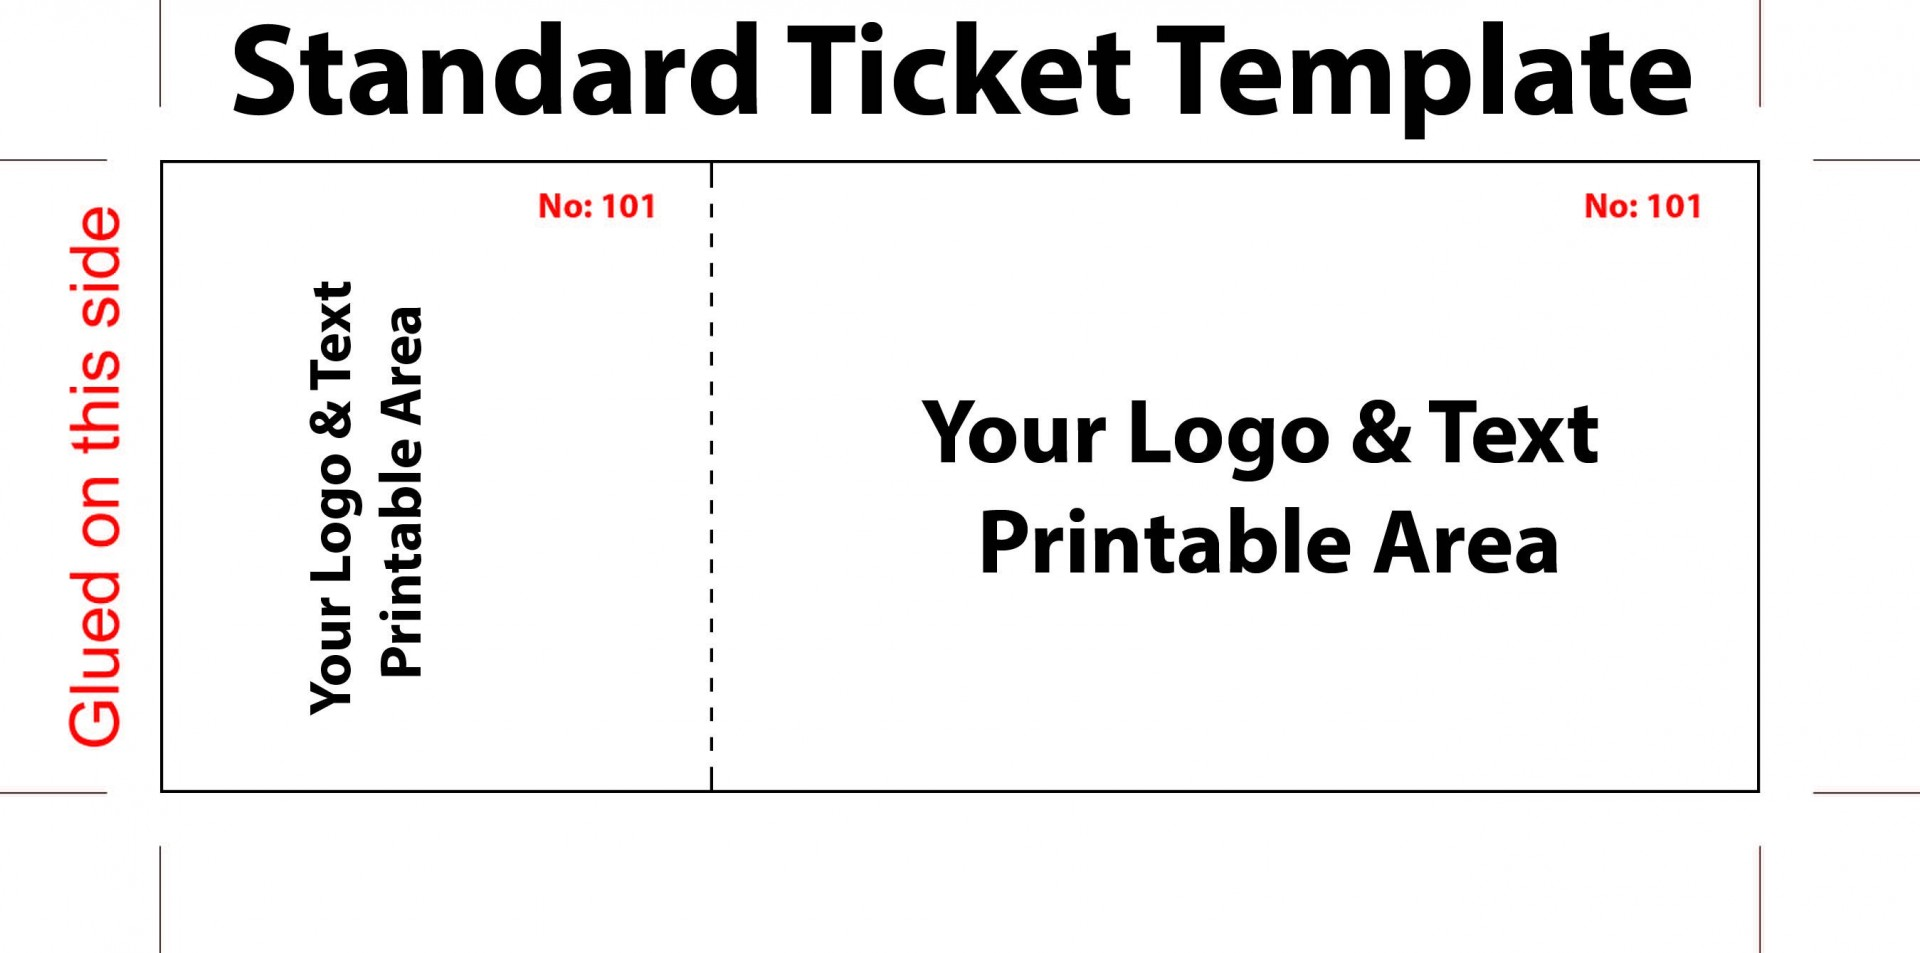 000 Shocking Print Ticket Free Template Image  Your Own1920